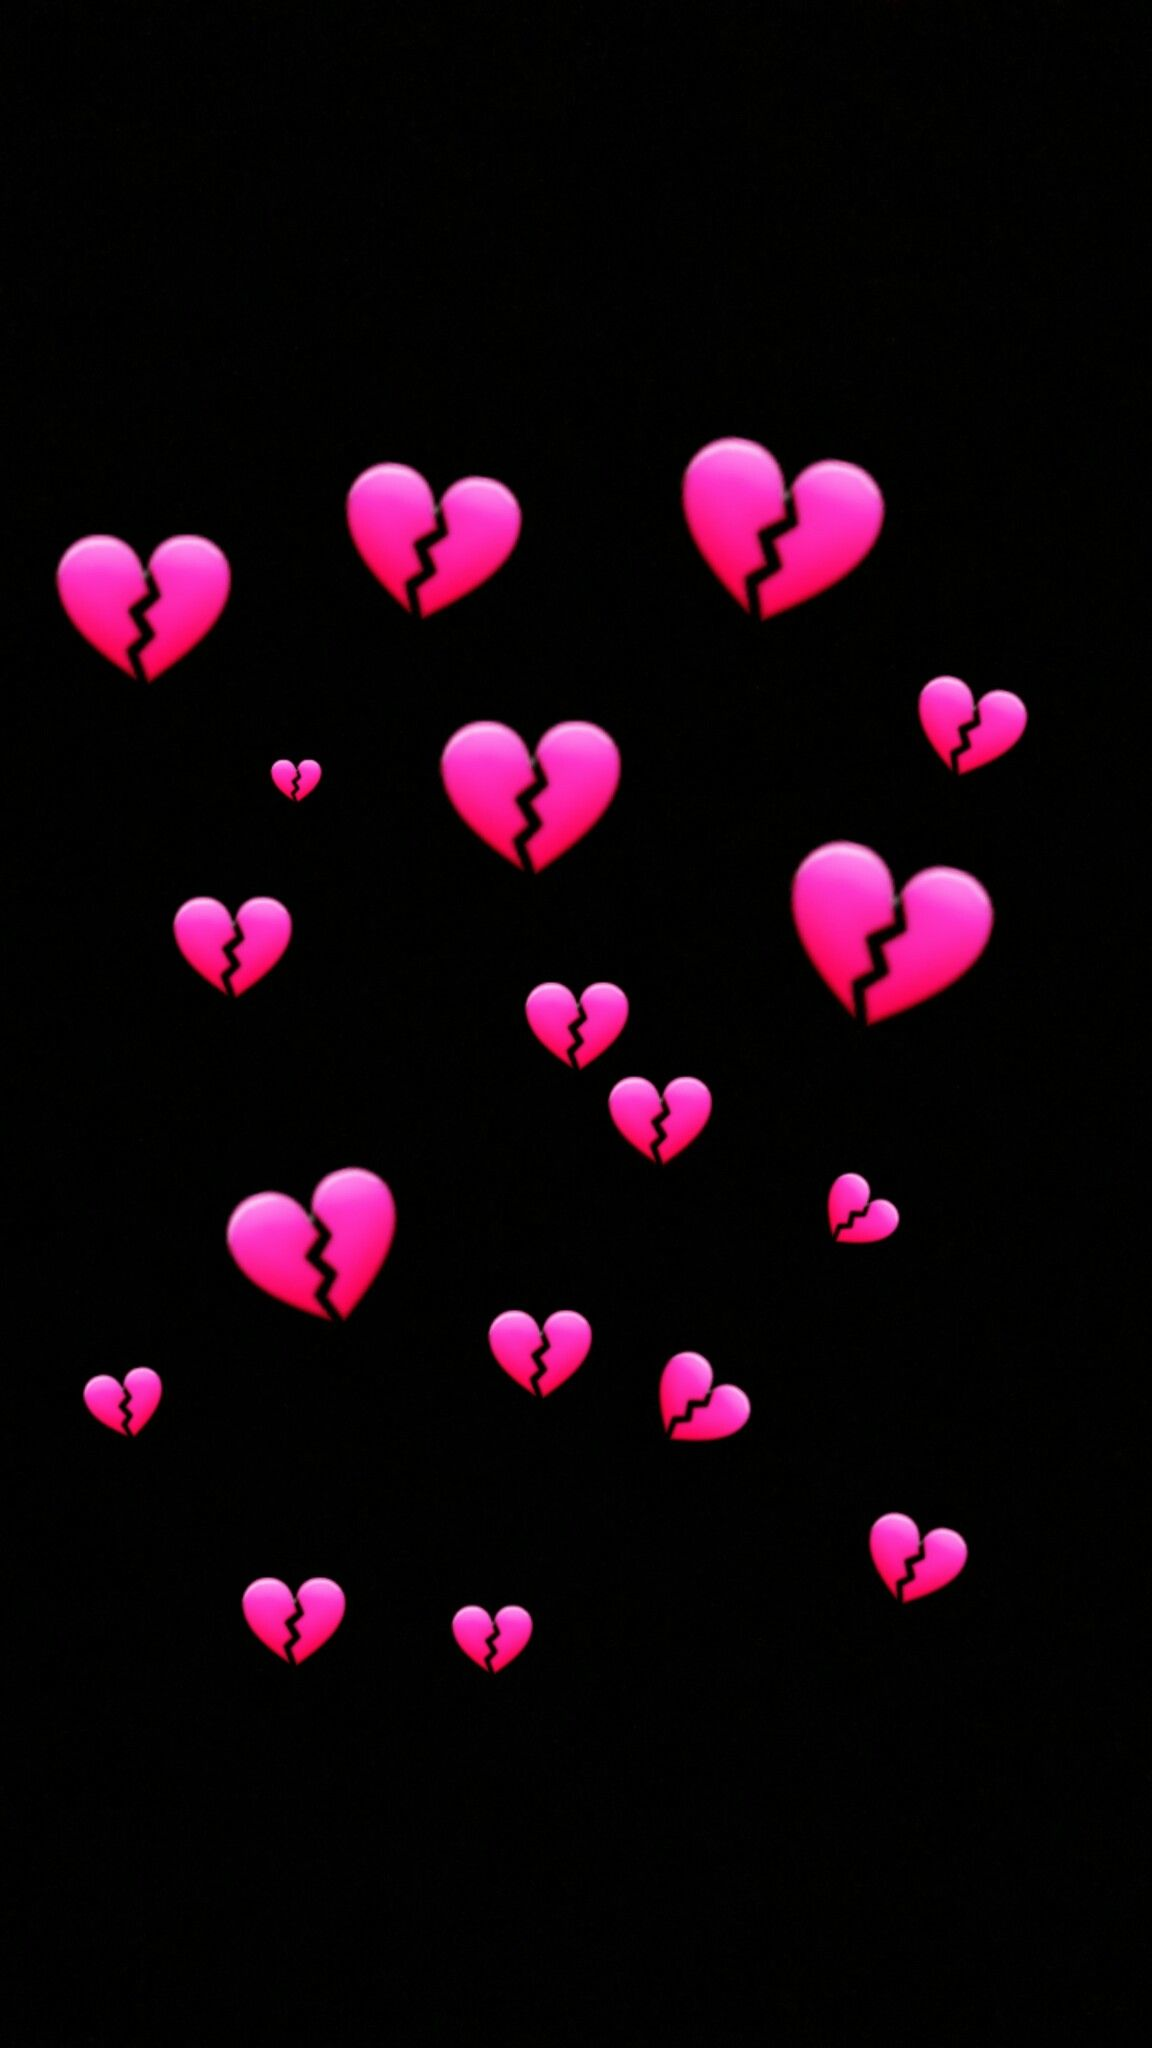 Wallpaper Heartbroke Cute Emoji Wallpaper Emoji Wallpaper Iphone Emoji Wallpaper